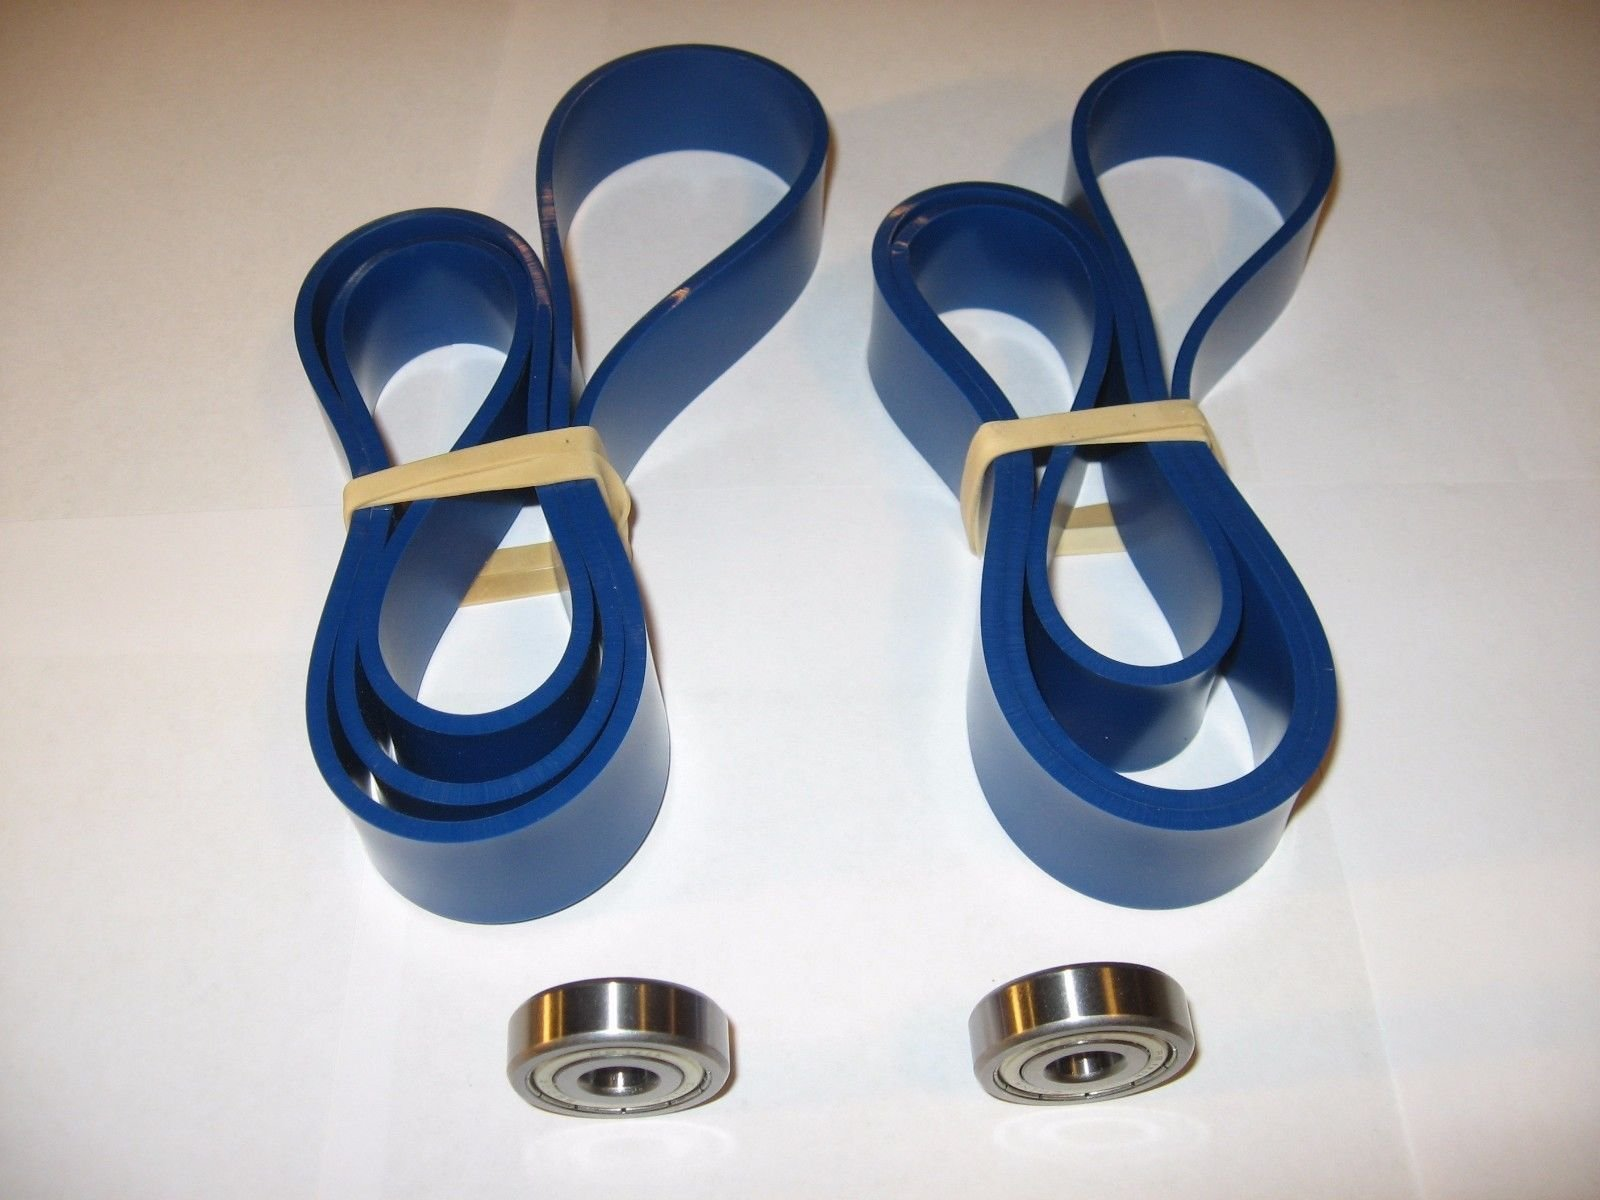 Workmas New Heavy Duty Band Saw Urethane 2 Blue Max Tire Set AND THRUST BEARING SET FOR SEARS CRAFTSMAN 113.243411